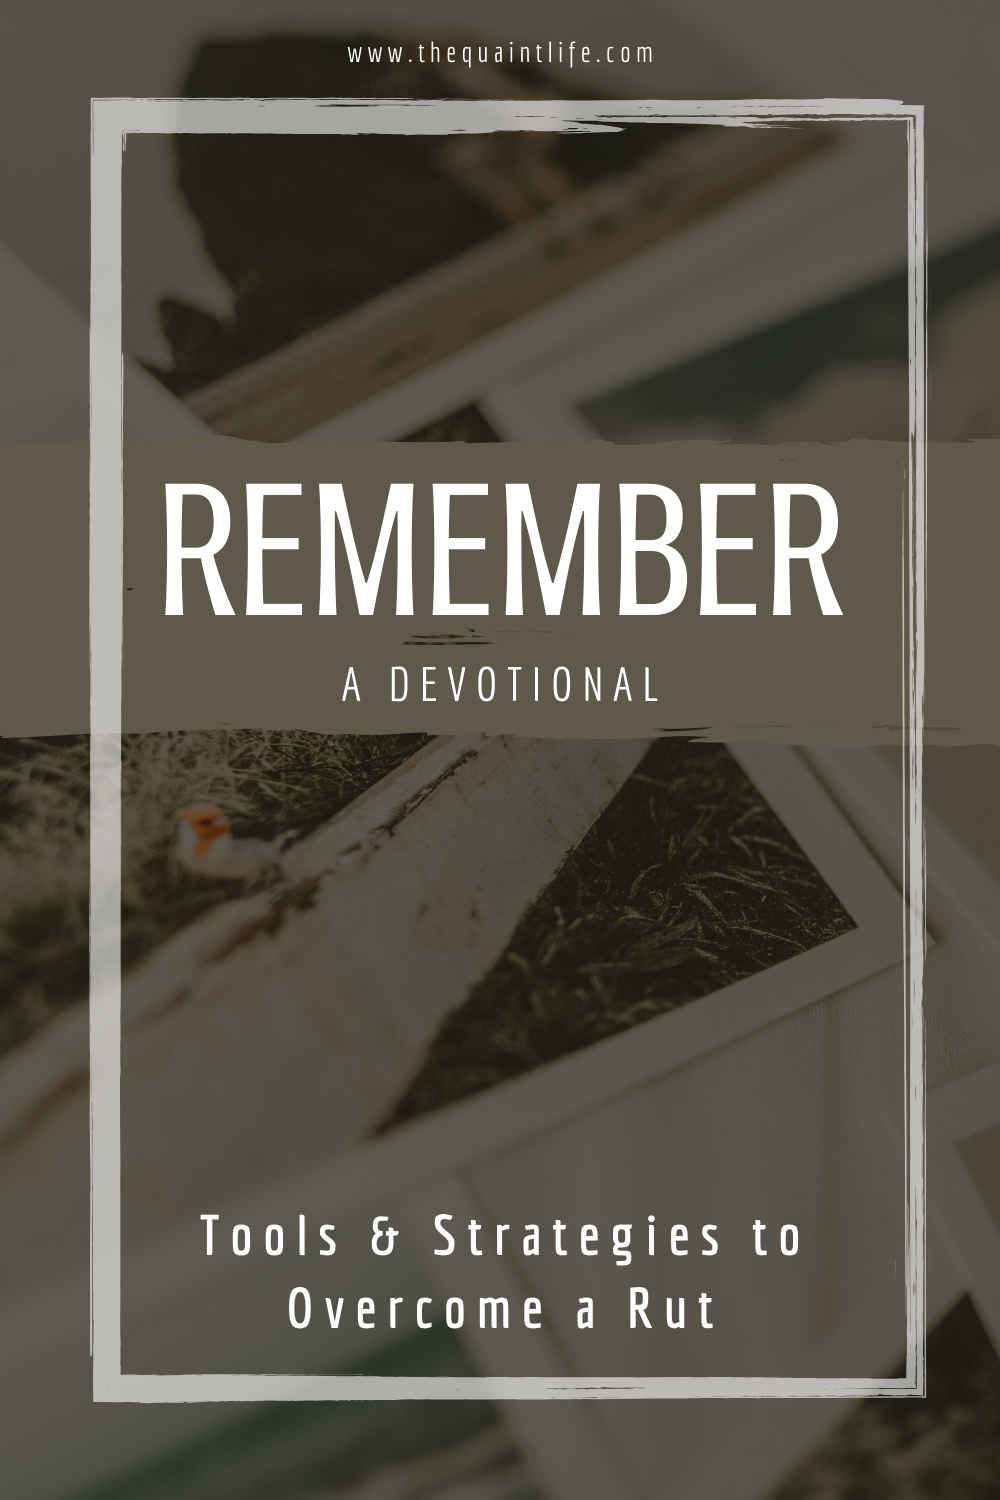 Tools & Strategies to Overcome a Rut